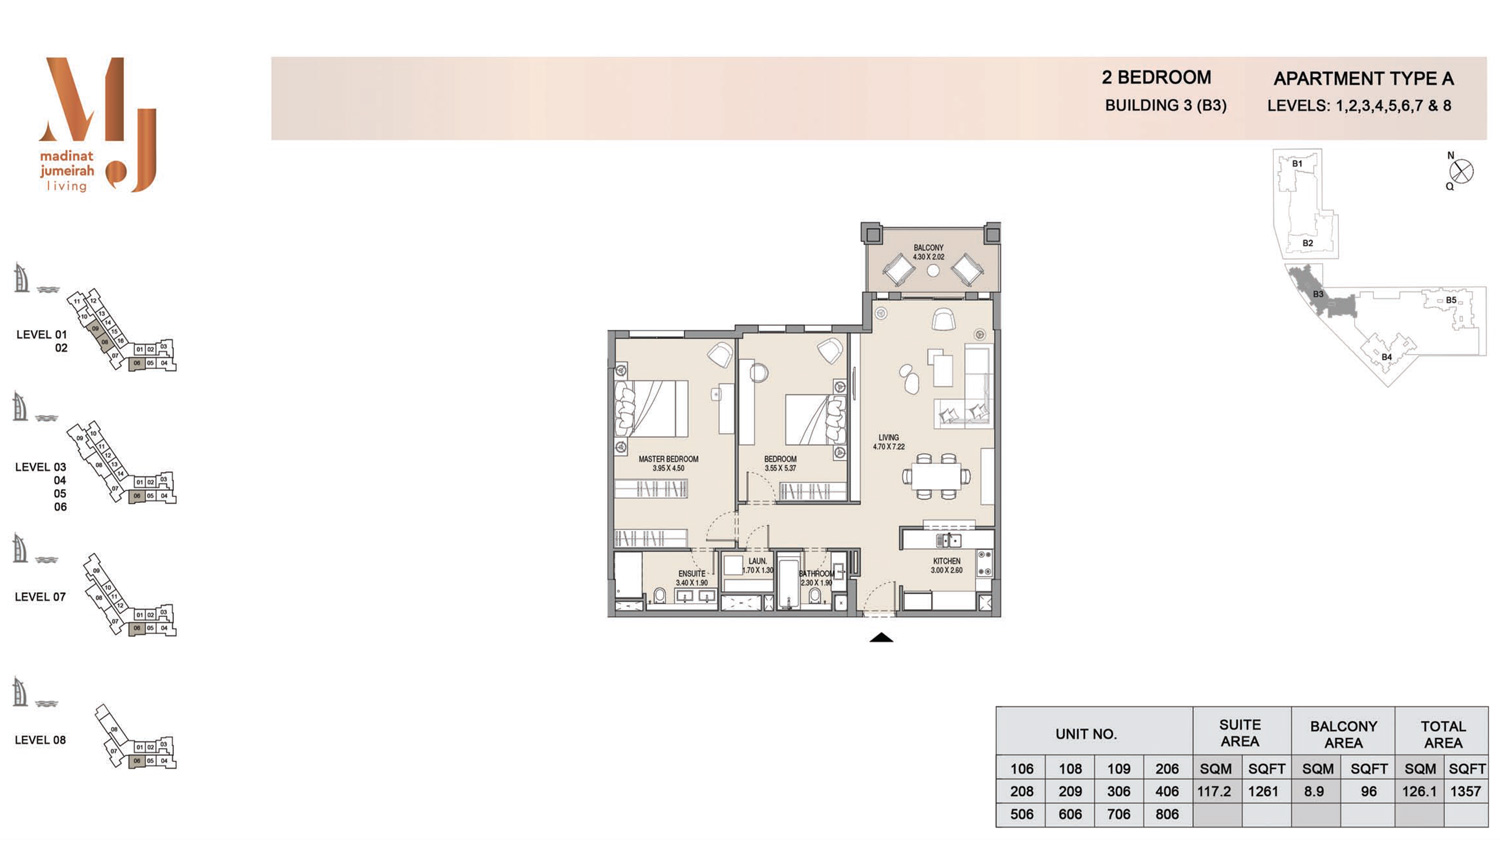 Building3 2 Bedroom, Type A2, Levels 1 to 8, Size 1357 sq.ft